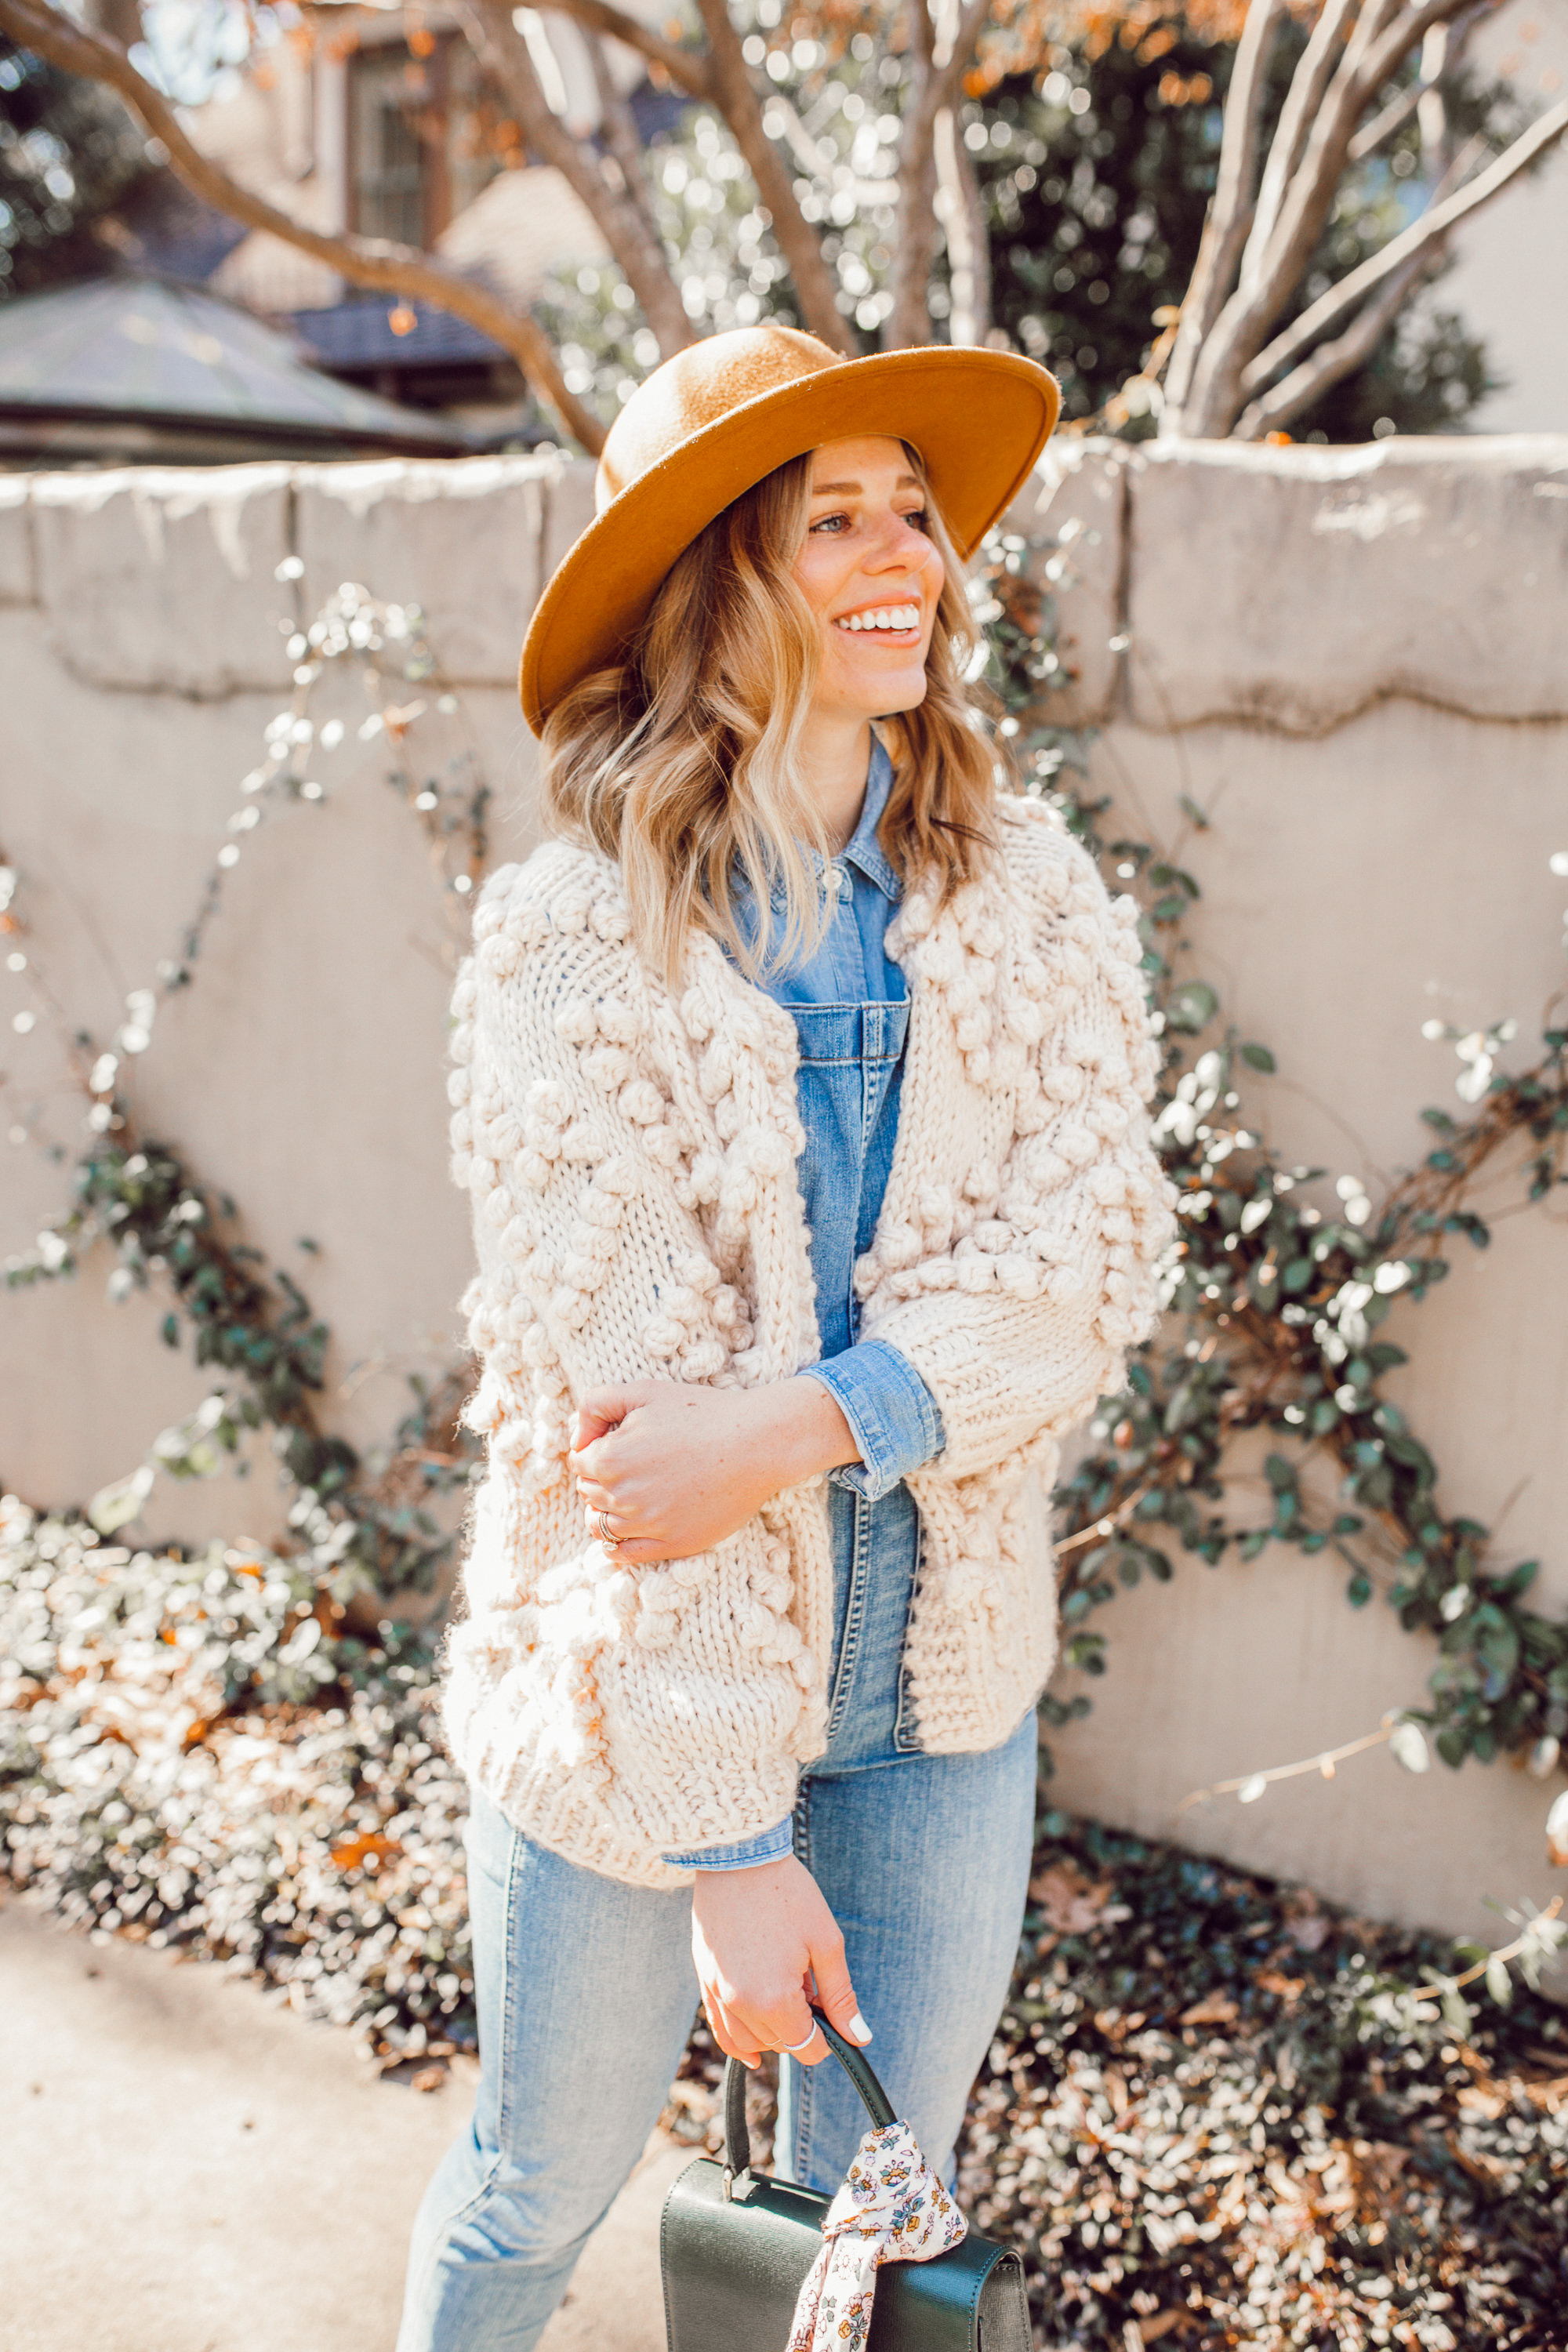 The Importance of Buying Pieces You LOVE - Even If Trendy featured on top US life and style blog Louella Reese| Image of a woman wearing Chicwish Knit Your Love Cardigan, Madewell Overalls, Yellow Wool Hat, Ariat Two24 Wilder Boots, and Neely & Chloe Ladylike Handbag.